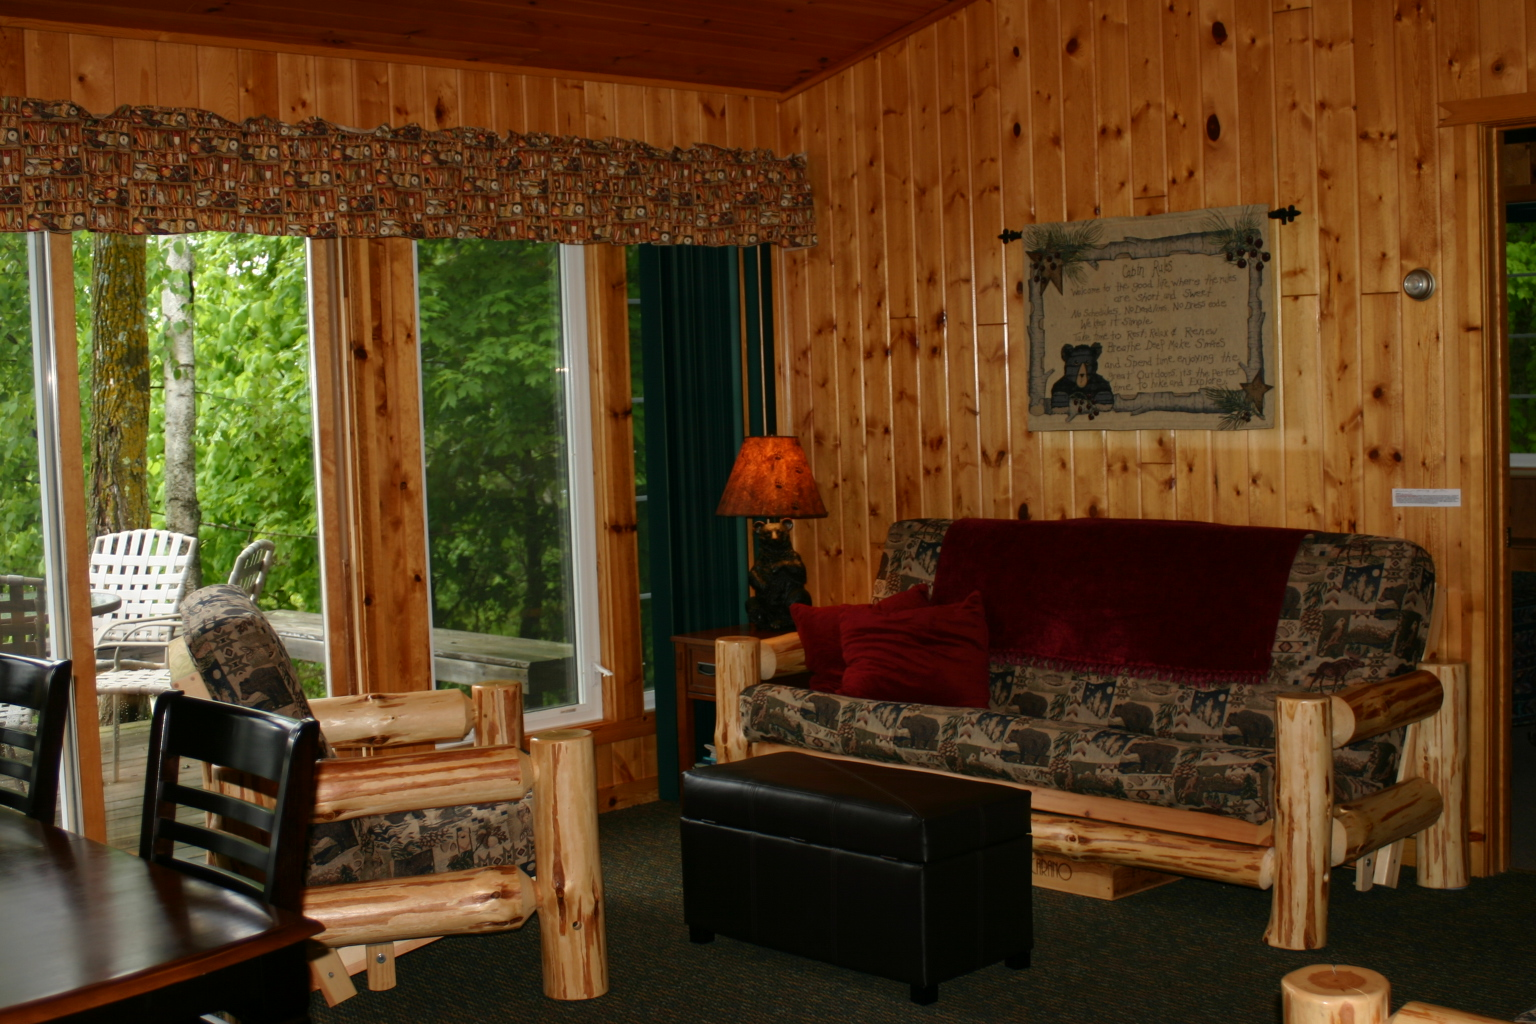 leech lake area resorts and lodging in minnesota